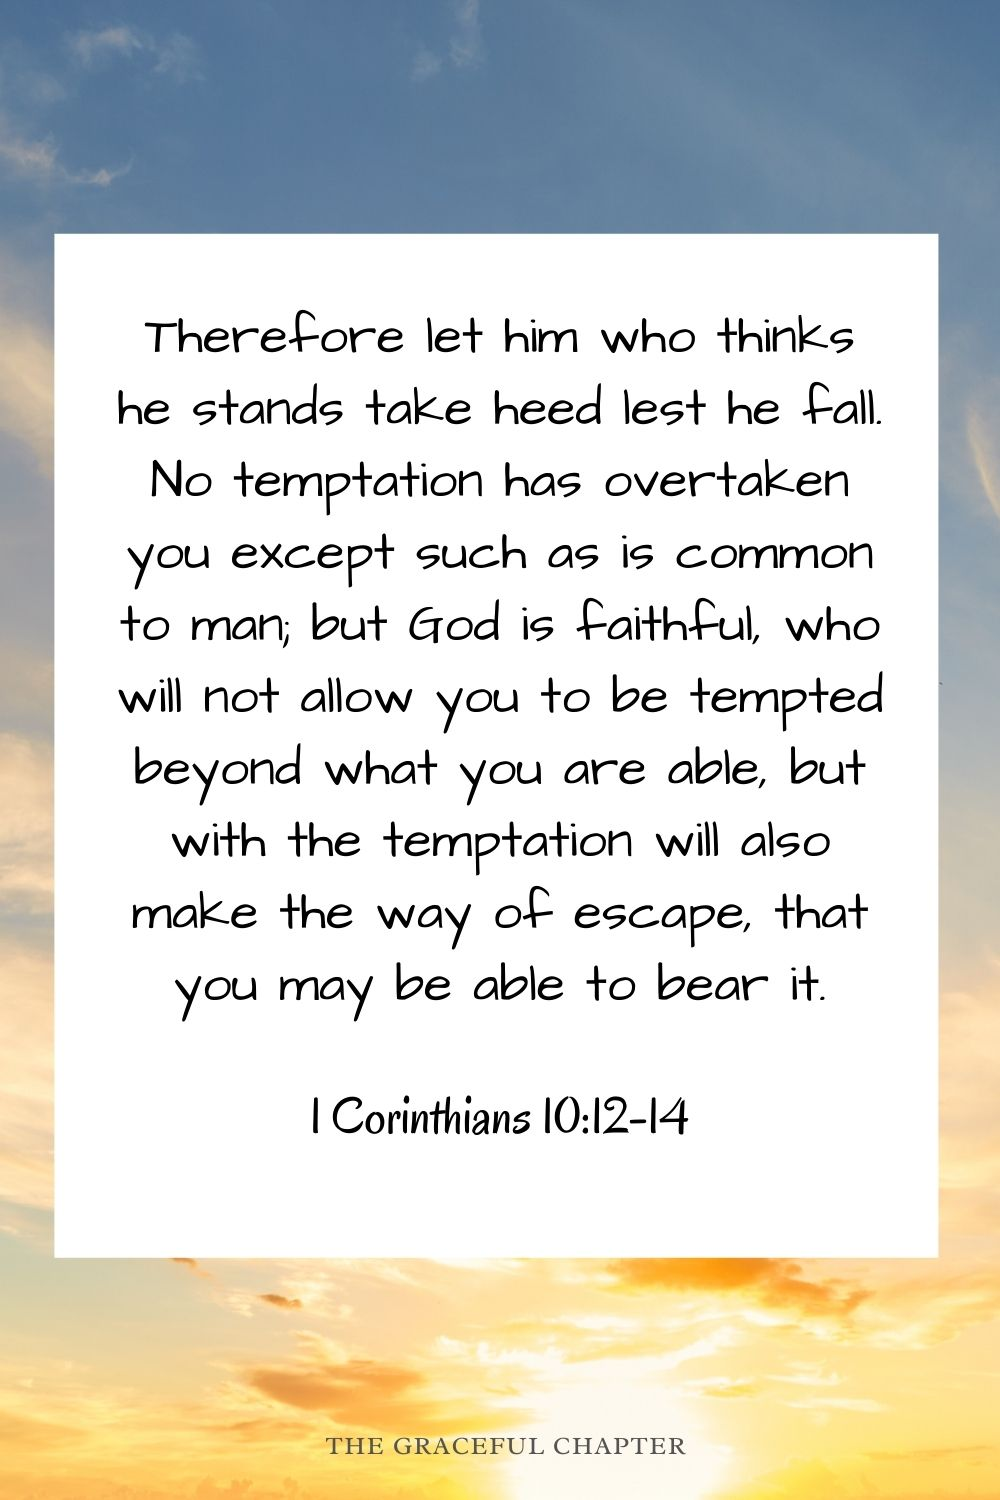 Therefore let him who thinks he stands take heed lest he fall. No temptation has overtaken you except such as is common to man; but God is faithful, who will not allow you to be tempted beyond what you are able, but with the temptation will also make the way of escape, that you may be able to bear it. 1 Corinthians 10:12-14